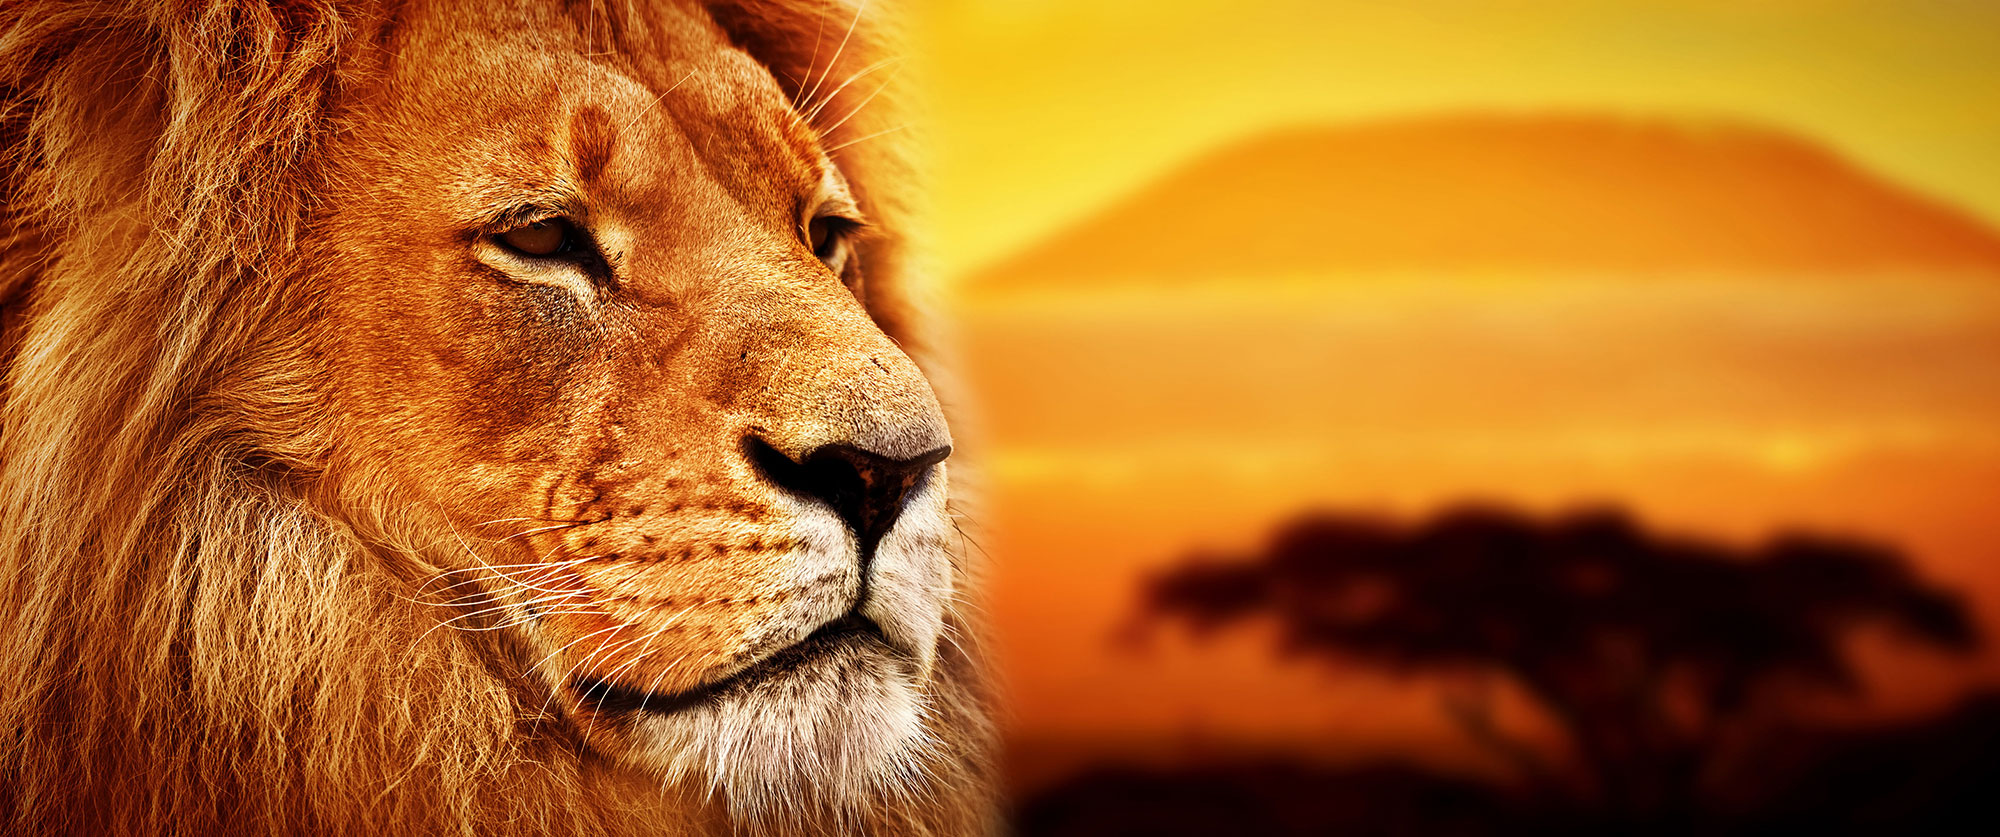 Custom Africa safari packages - Lion in front of Mt Kilimanjaro